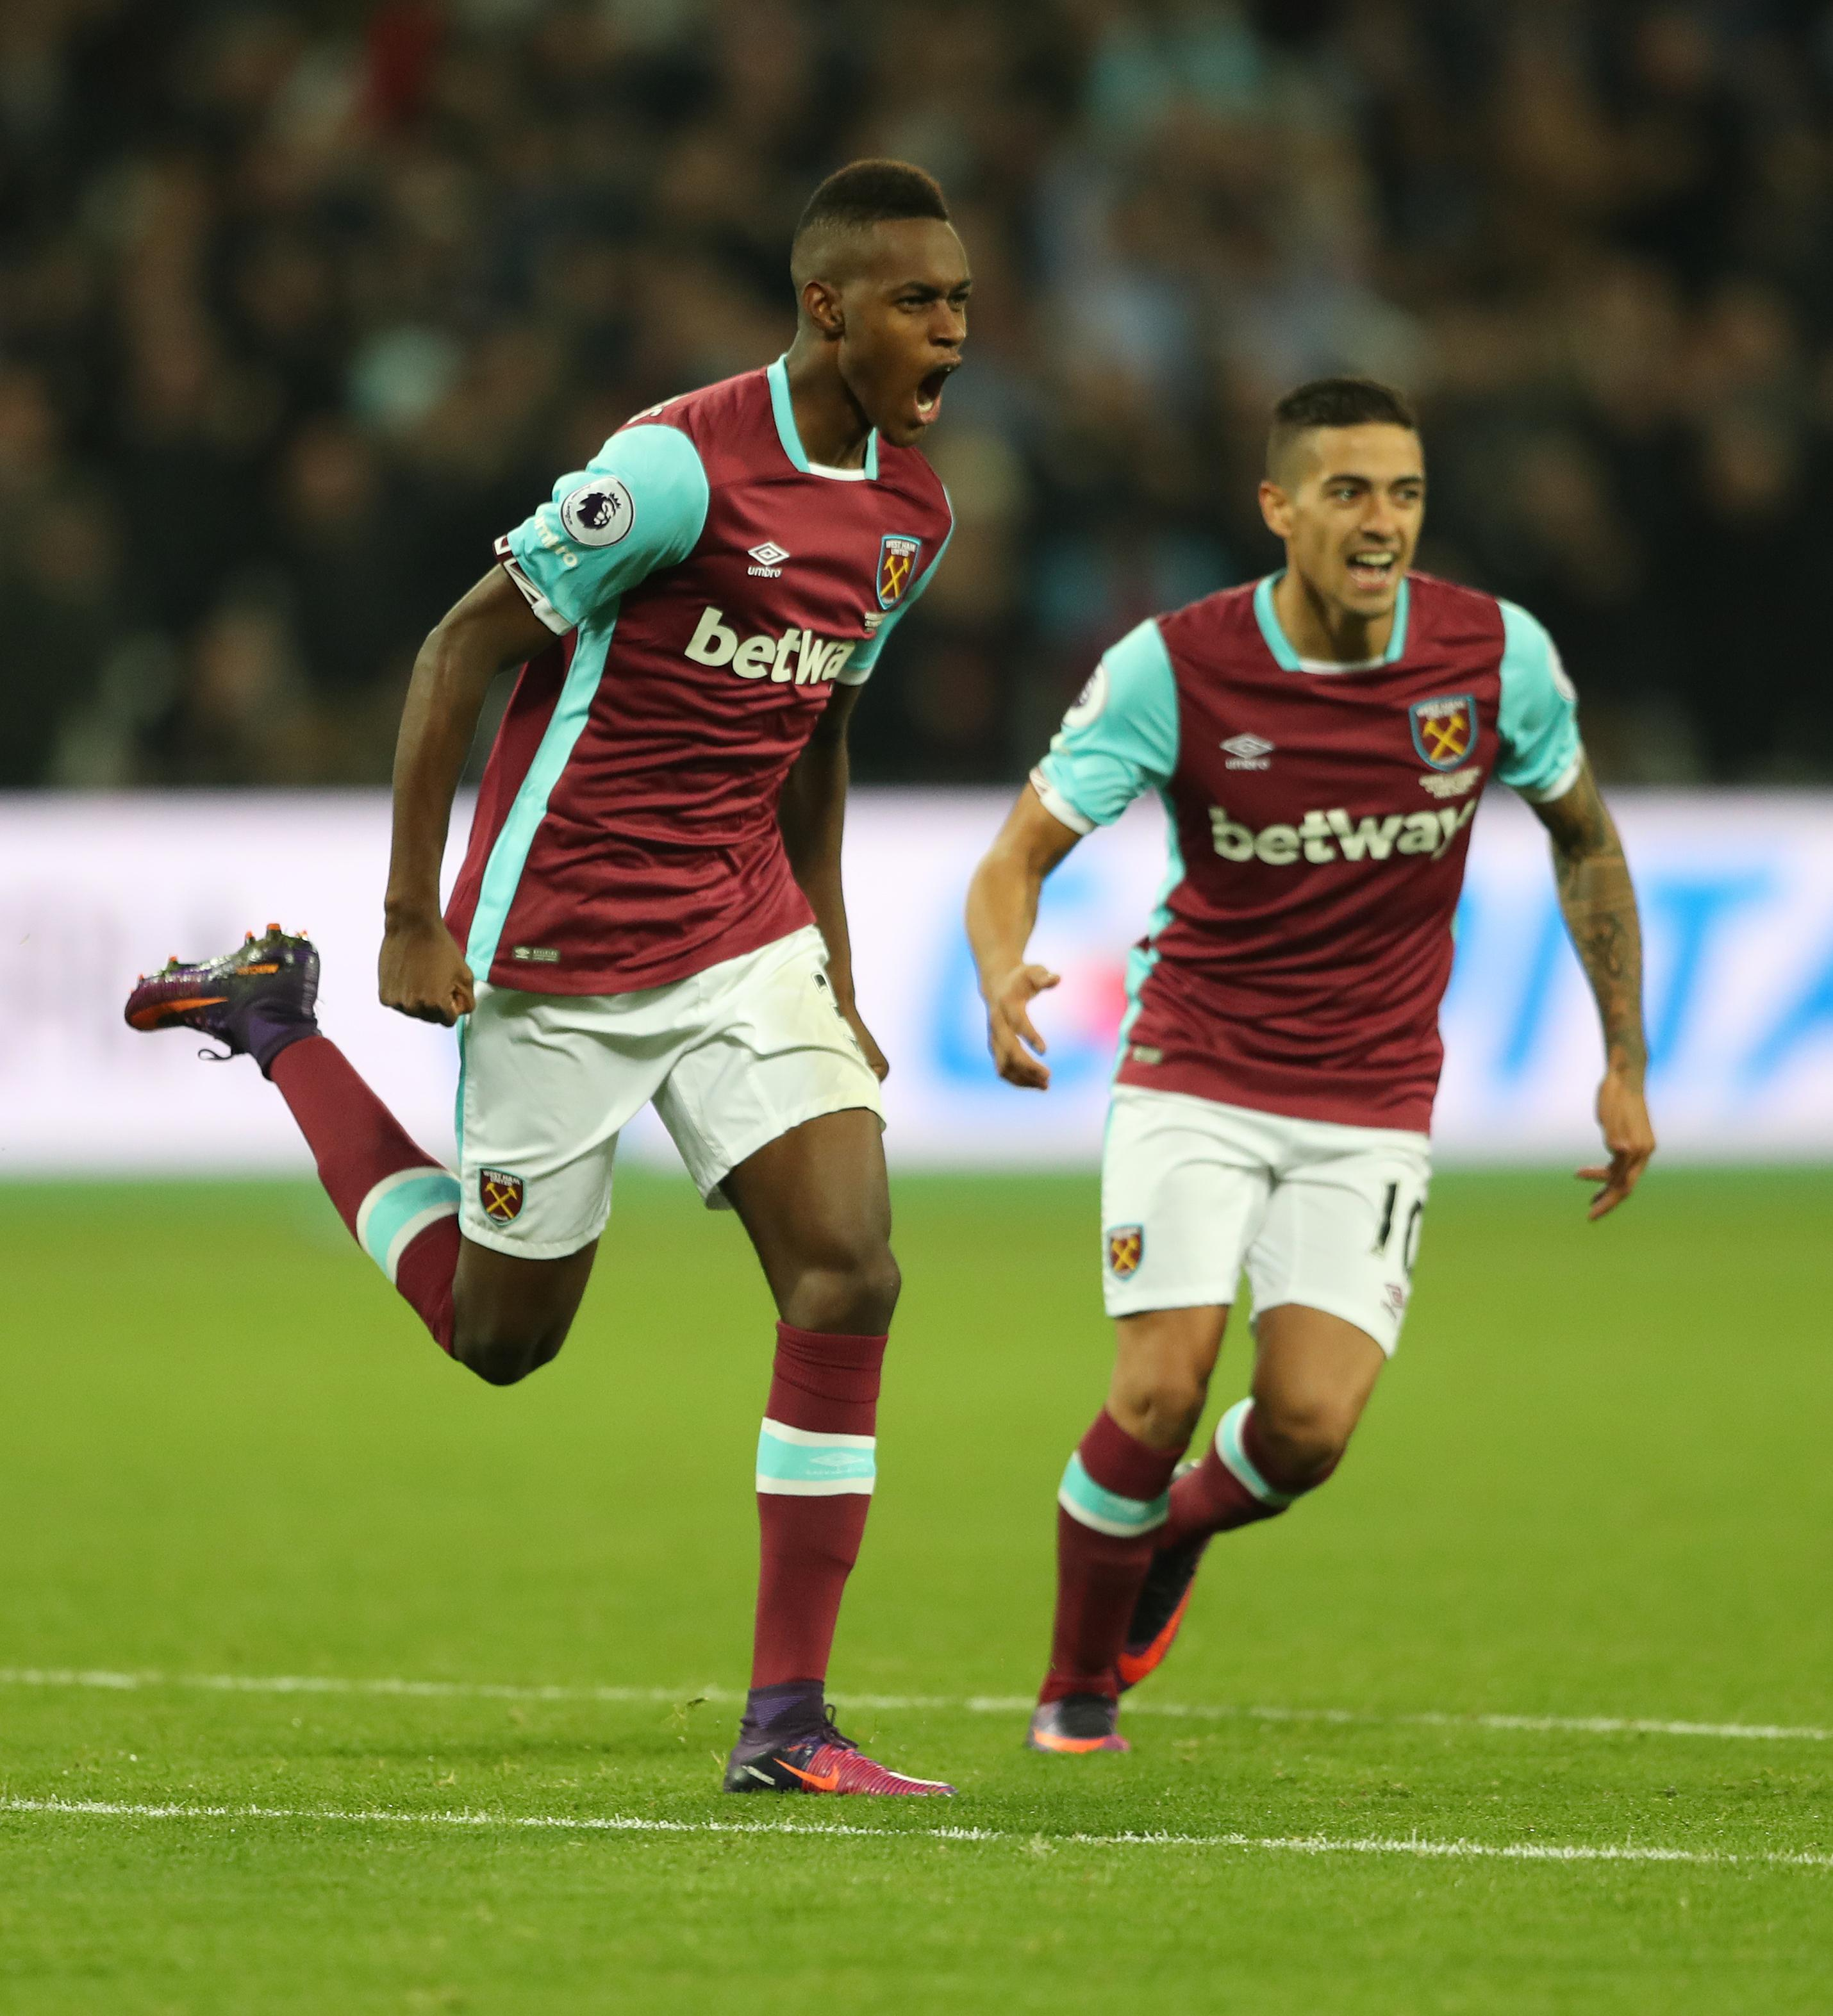 Edimilson Fernandes is heading for Serie A with Fiorentina